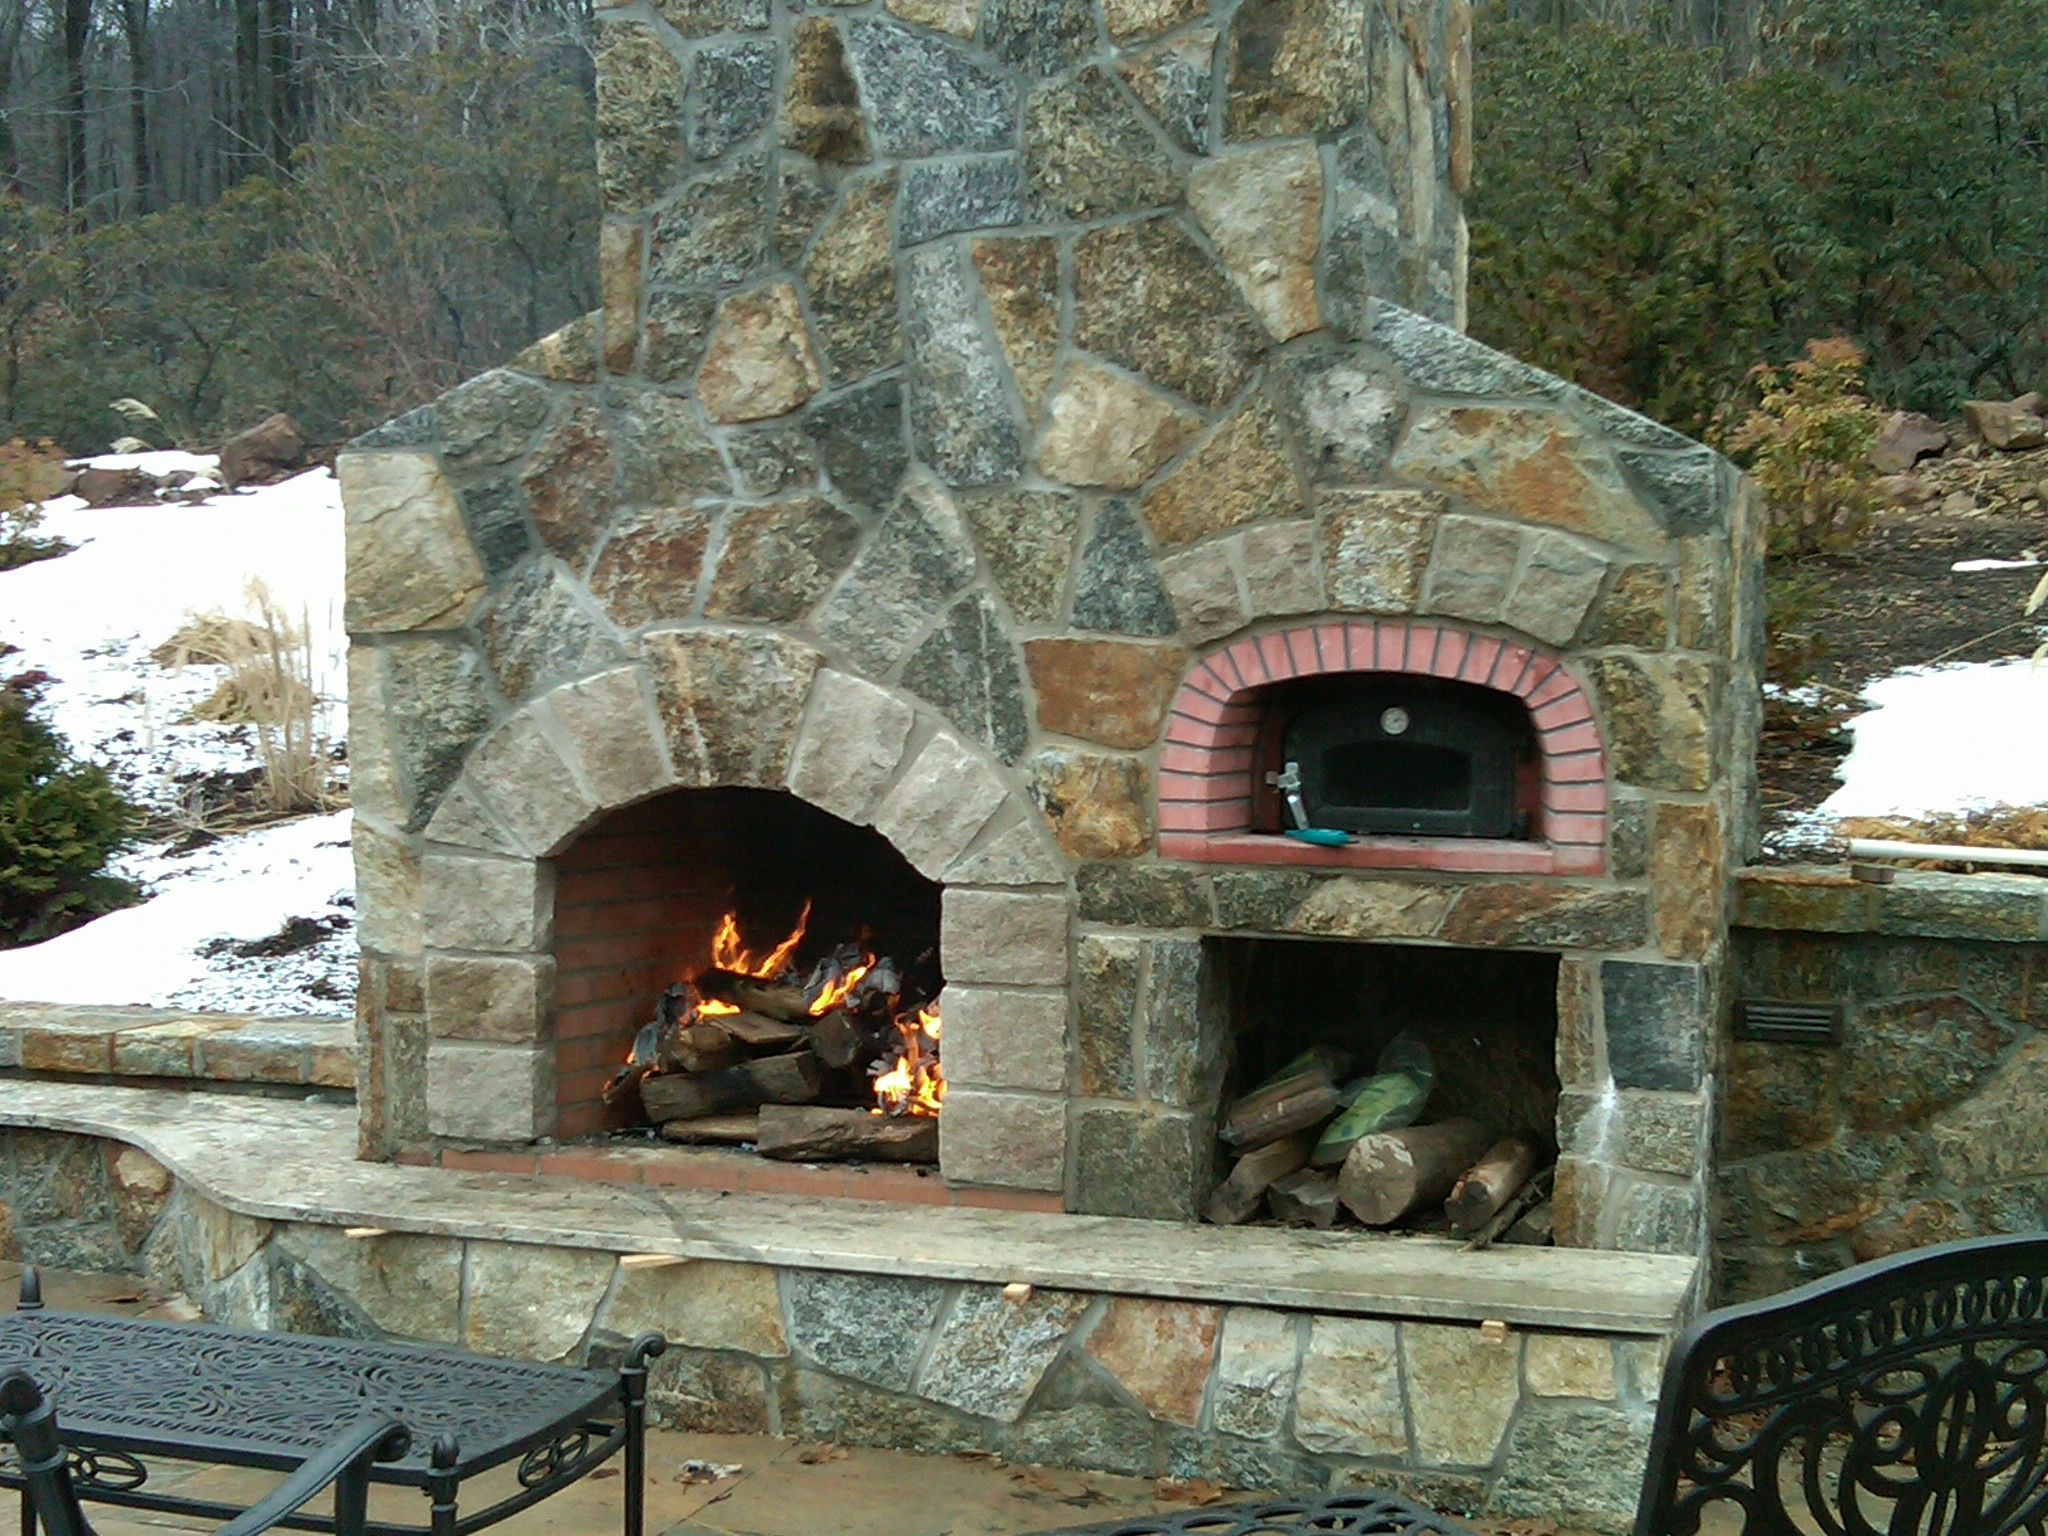 Outdoor Fireplaces Are The Best We Build The Preferred Lifestyle Preferred Properties La Pizza Oven Outdoor